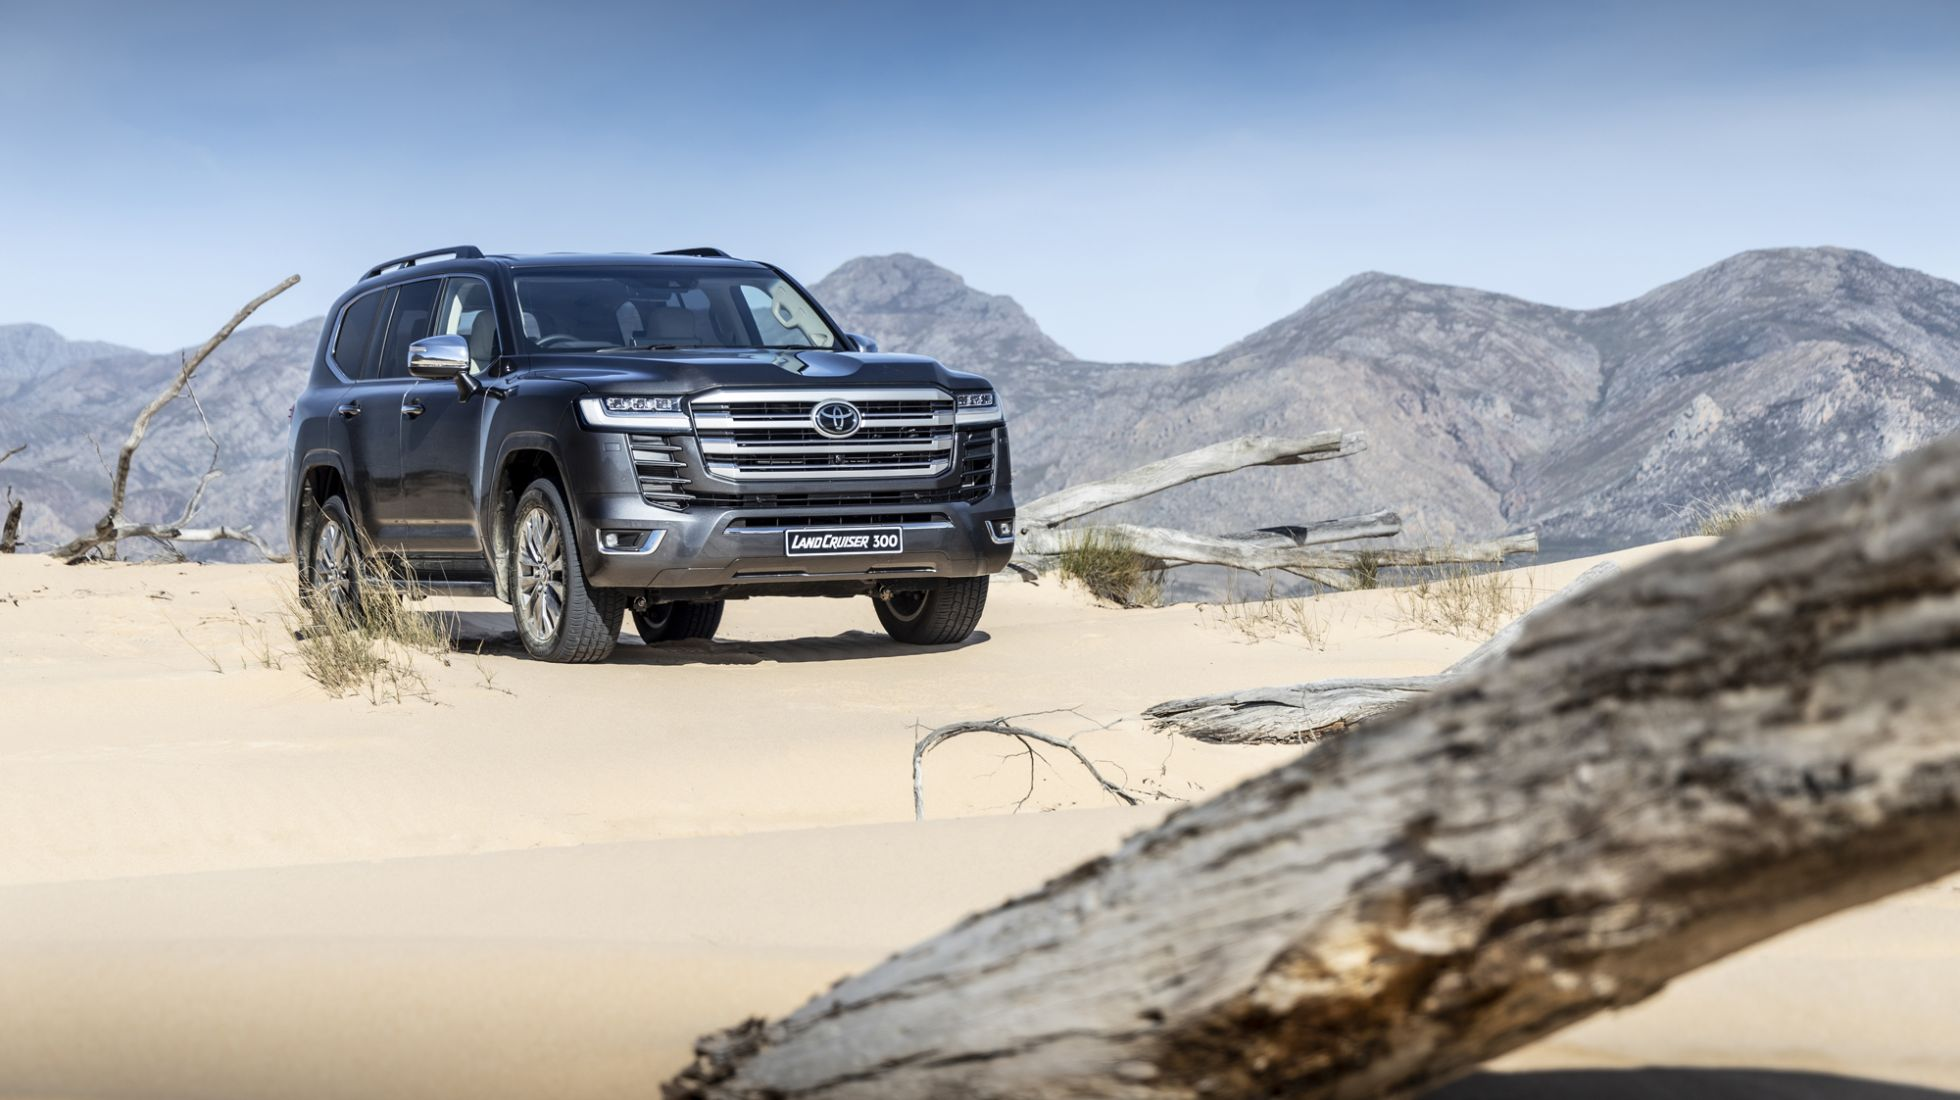 First Drive: Toyota Land Cruiser 300 reinvents family haulers